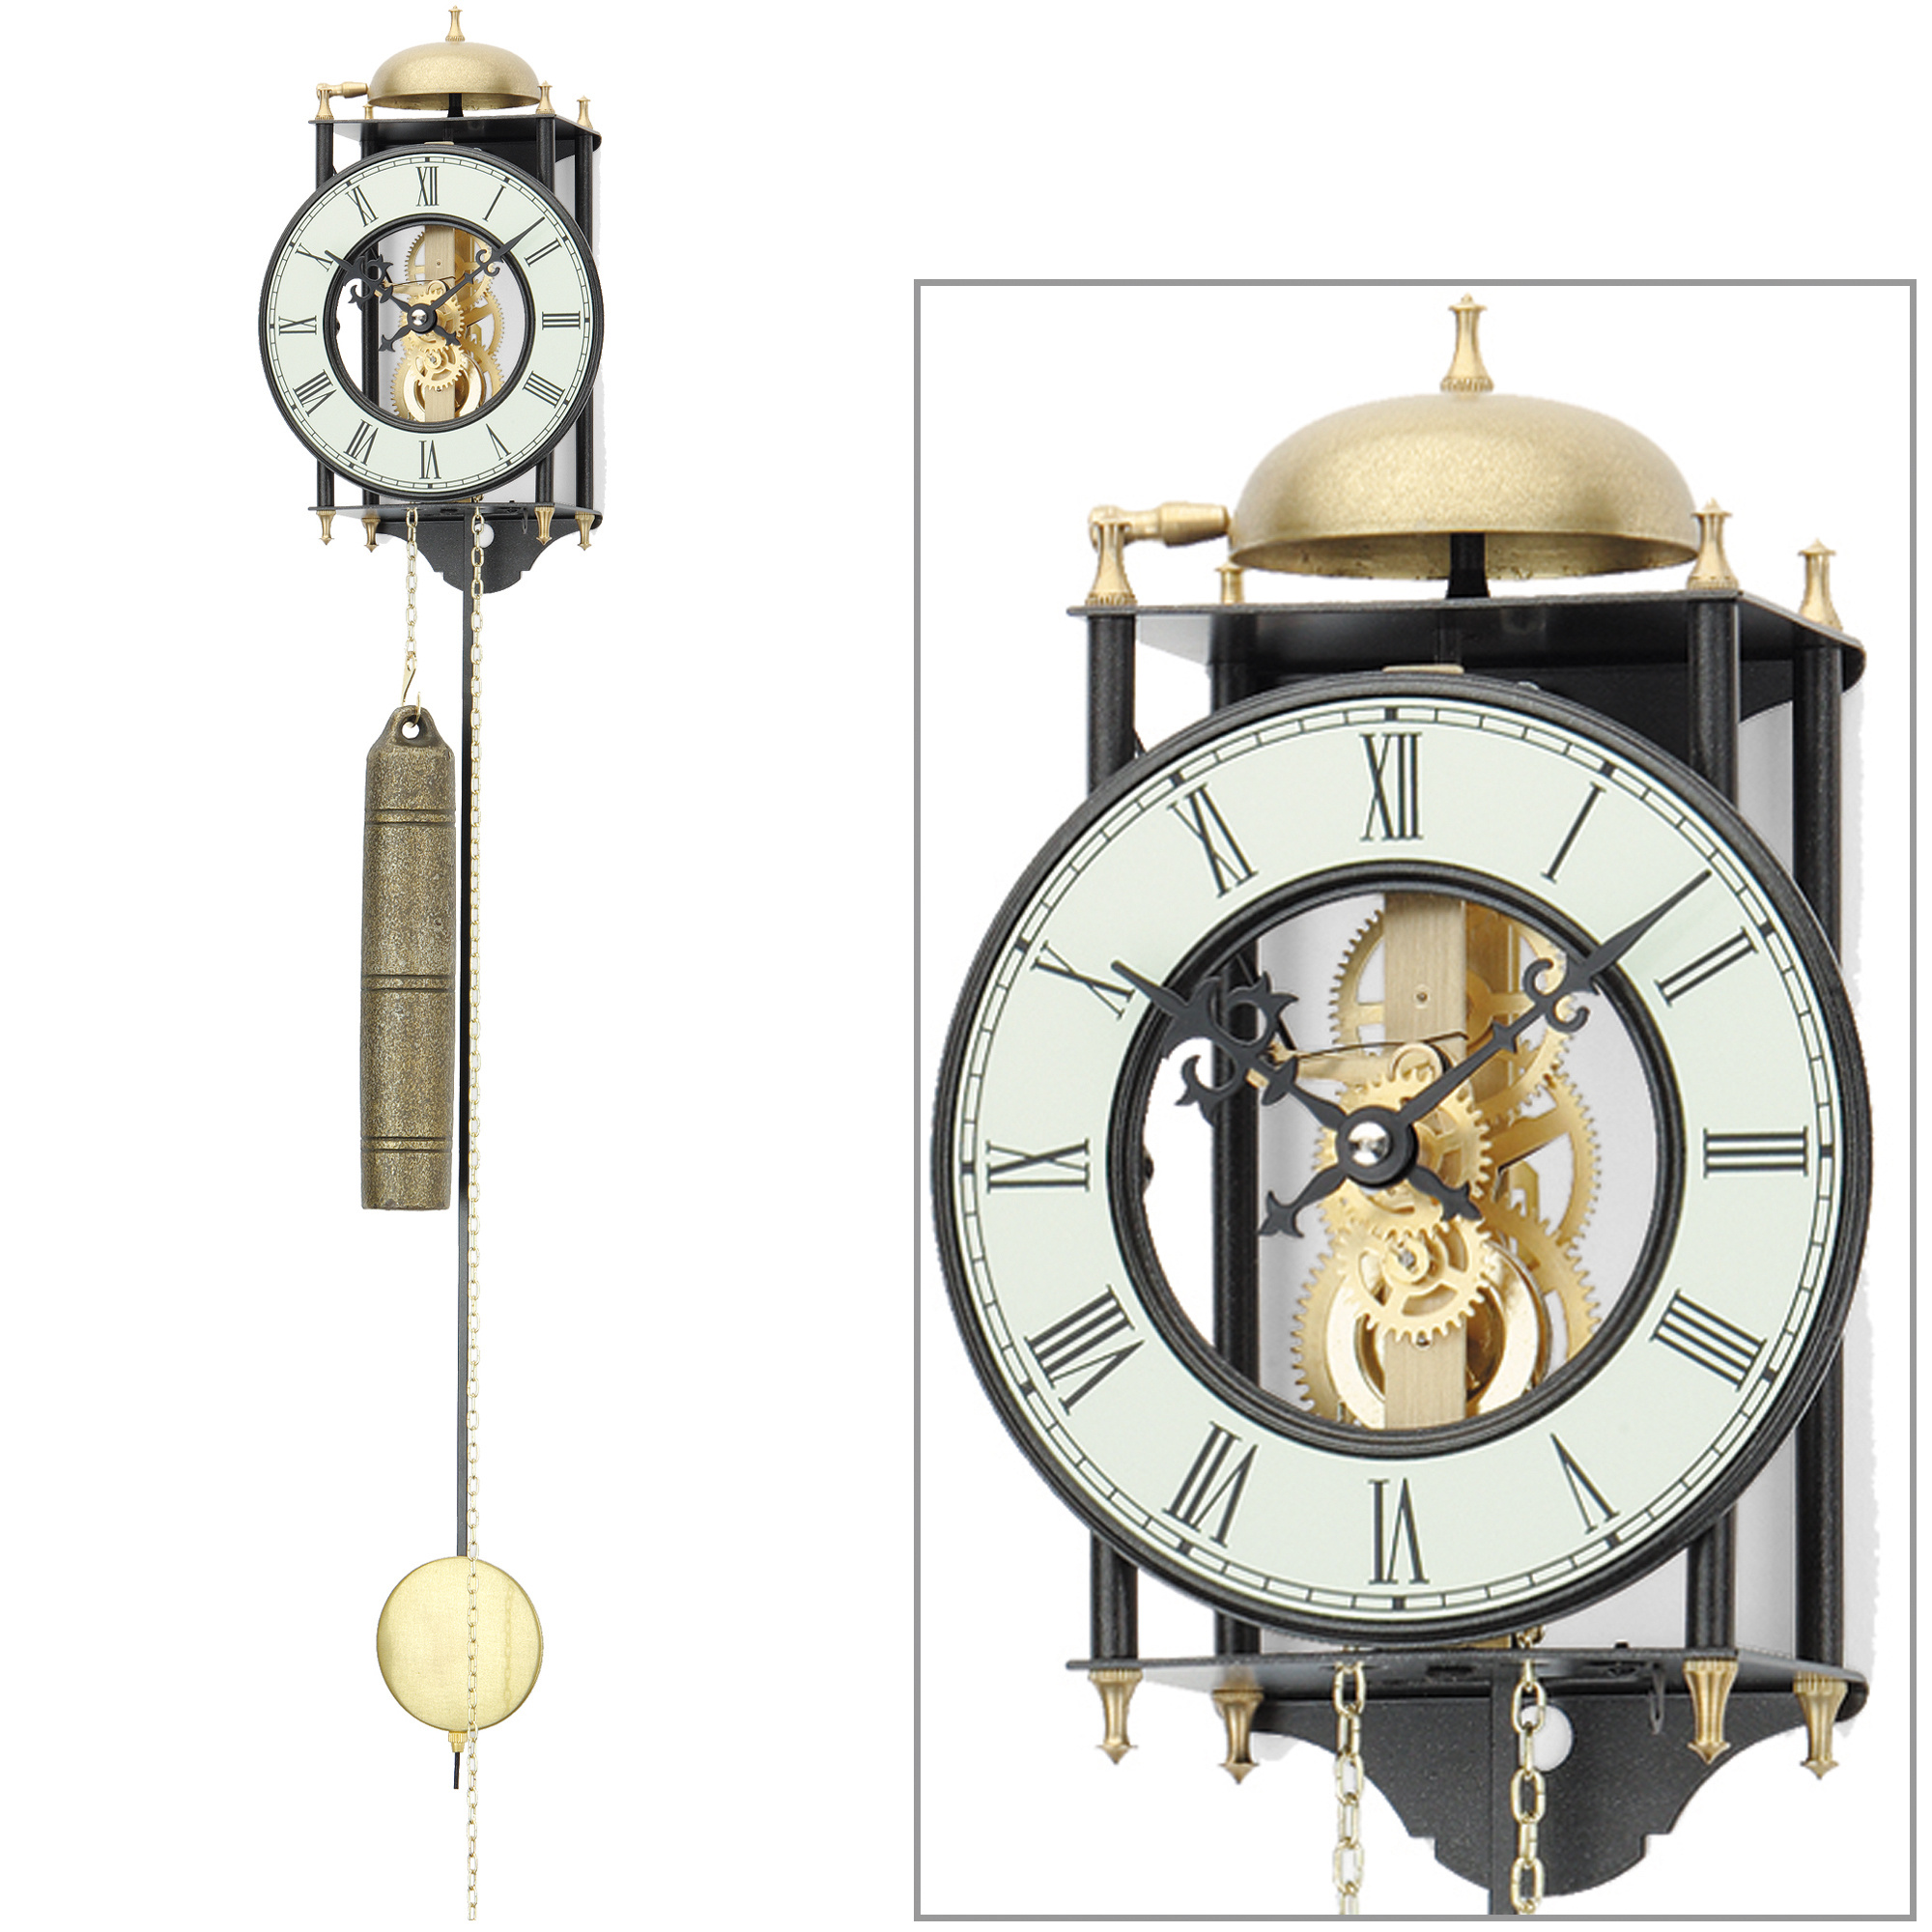 ams 302 wanduhr mit pendel mechanisch golden. Black Bedroom Furniture Sets. Home Design Ideas